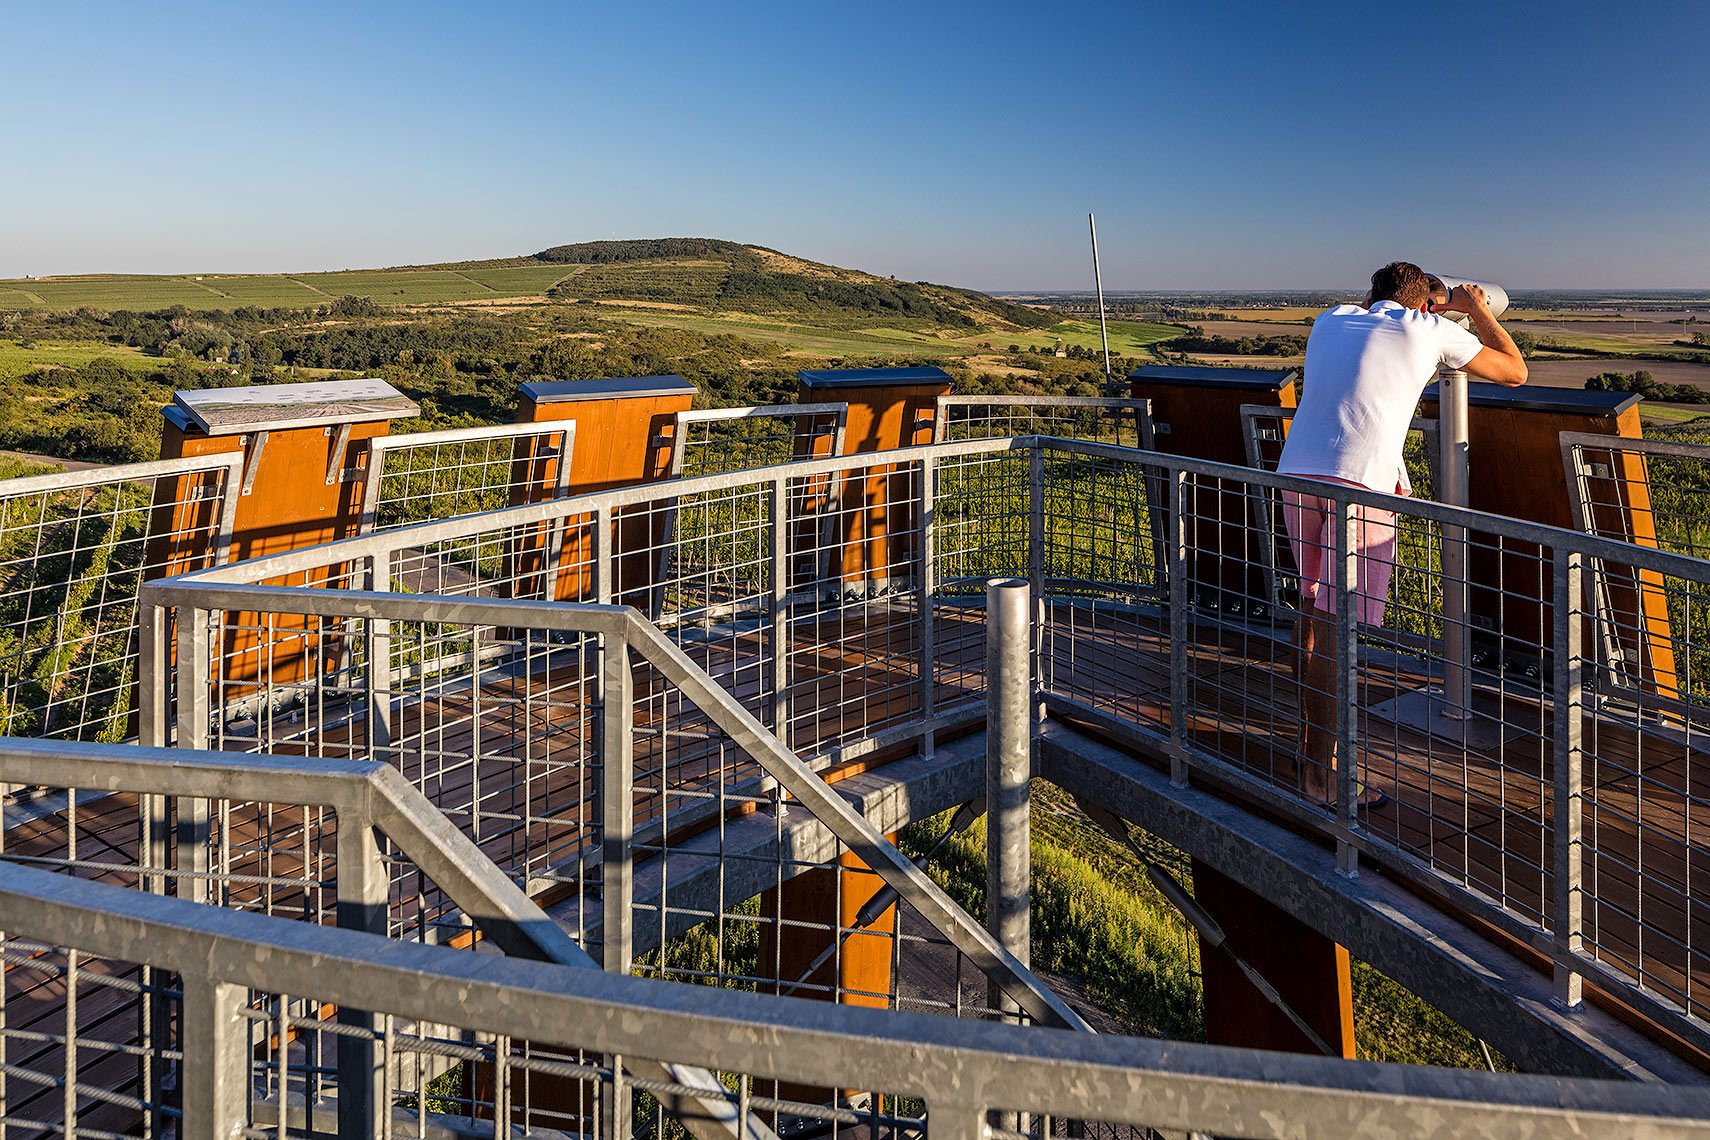 Top platform of the Tokaj tower, Peter A. Sellar Architectural Photographer